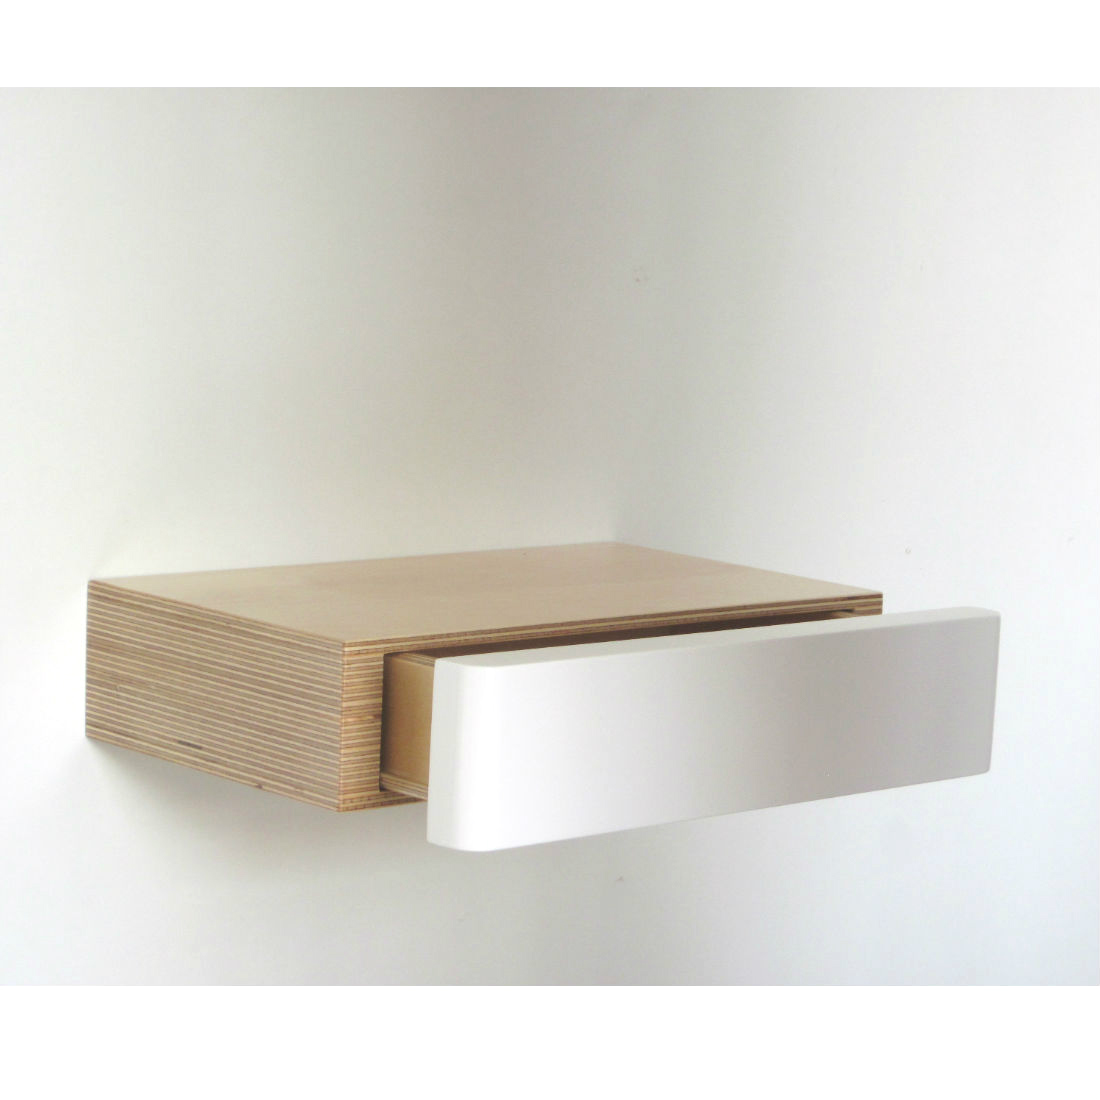 White Floating Shelves Pacco Floating Shelf Drawer: Birch White | Bright Blue Living